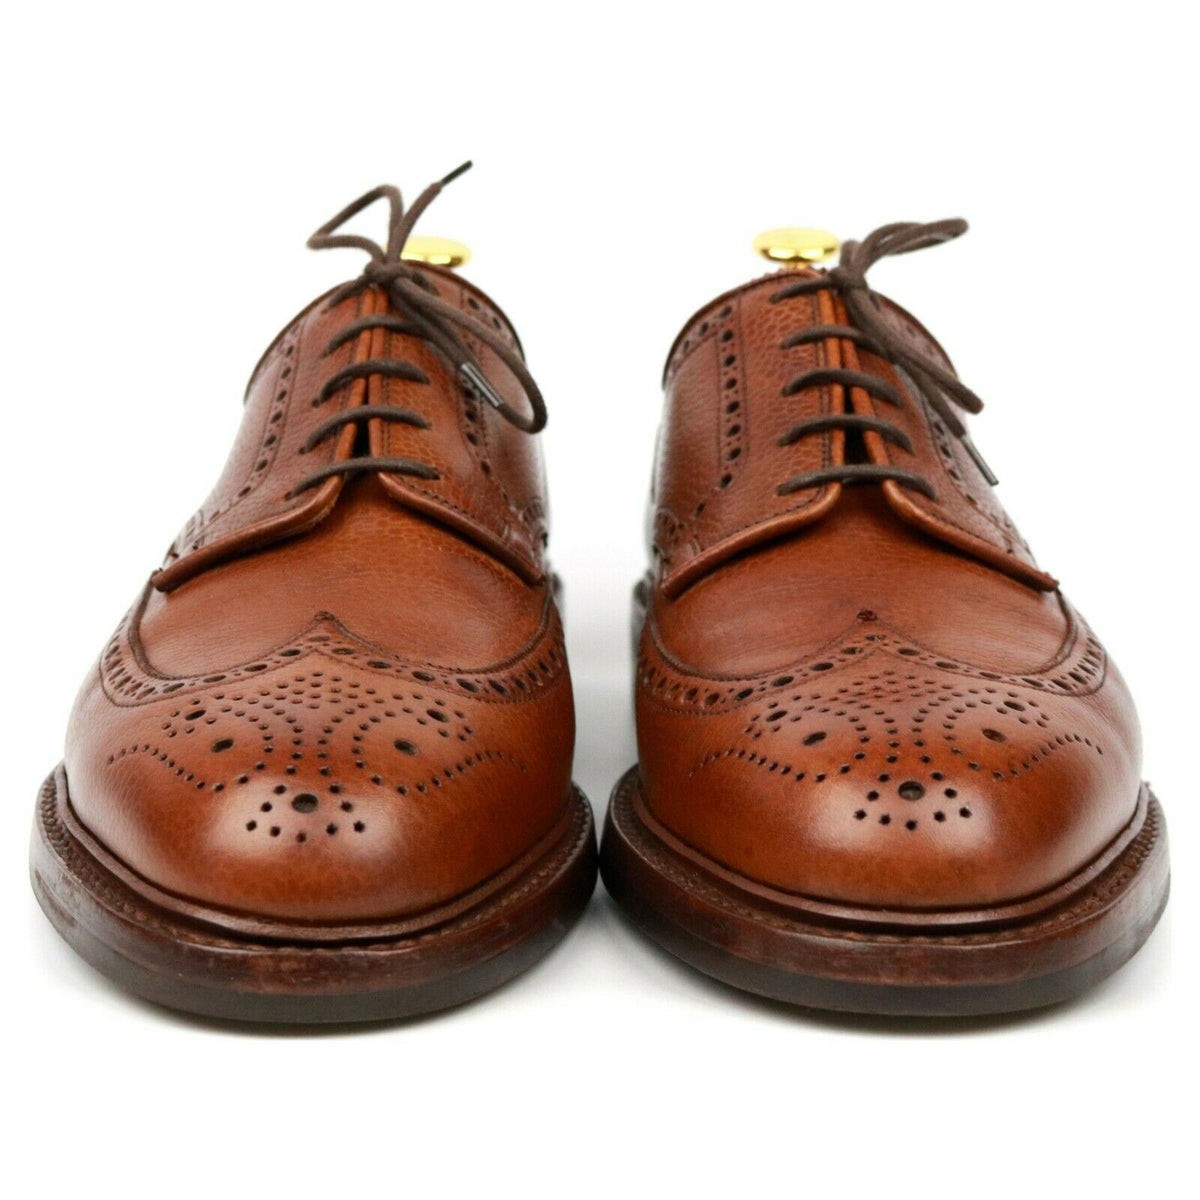 Crockett & Jones 'Pembroke' Tan Brown Leather Derby Brogues UK 7 E